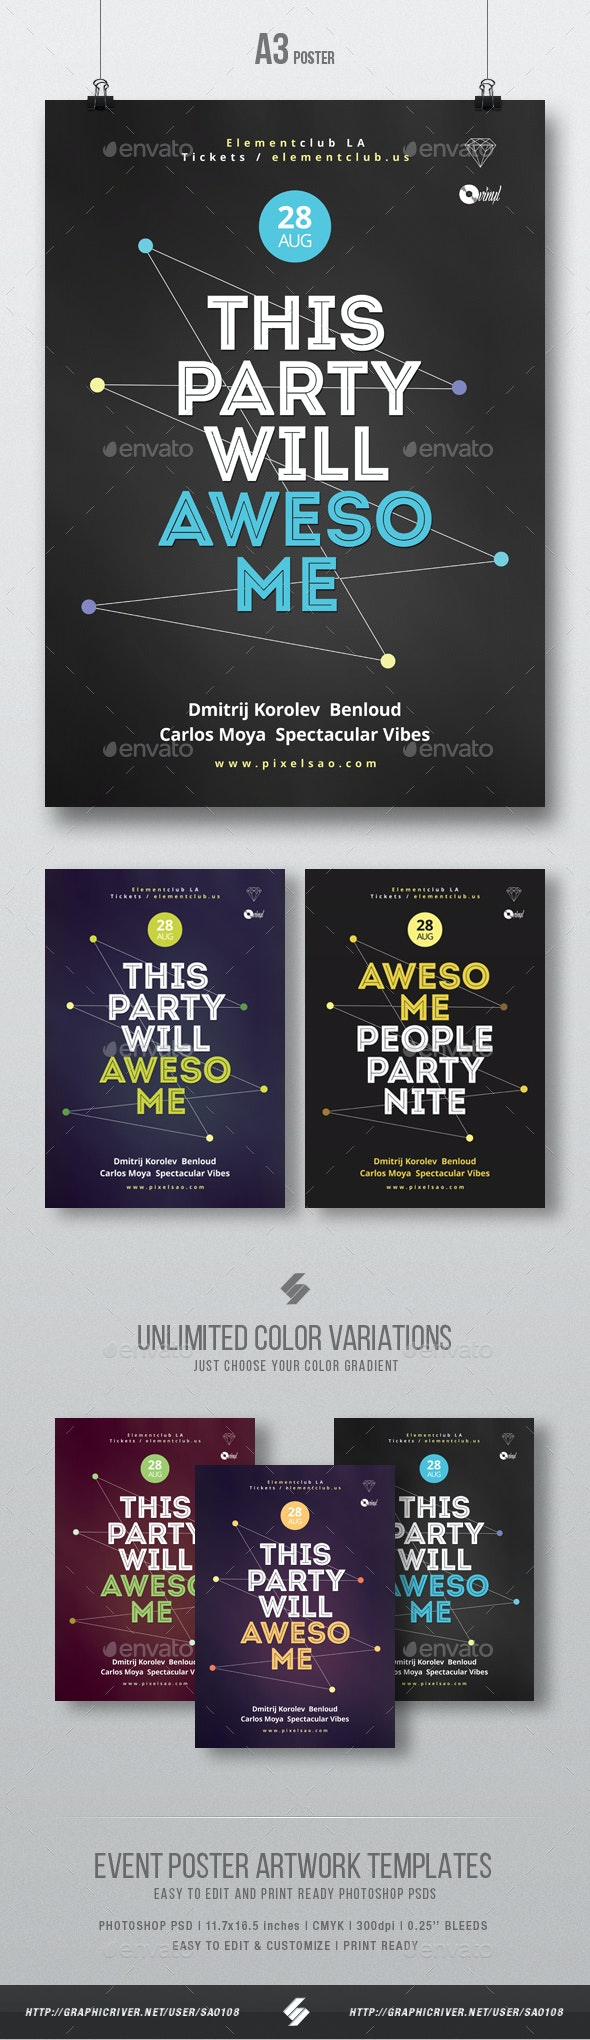 Awesome Party Night - Creative Poster / Flyer Template A3 - Clubs & Parties Events